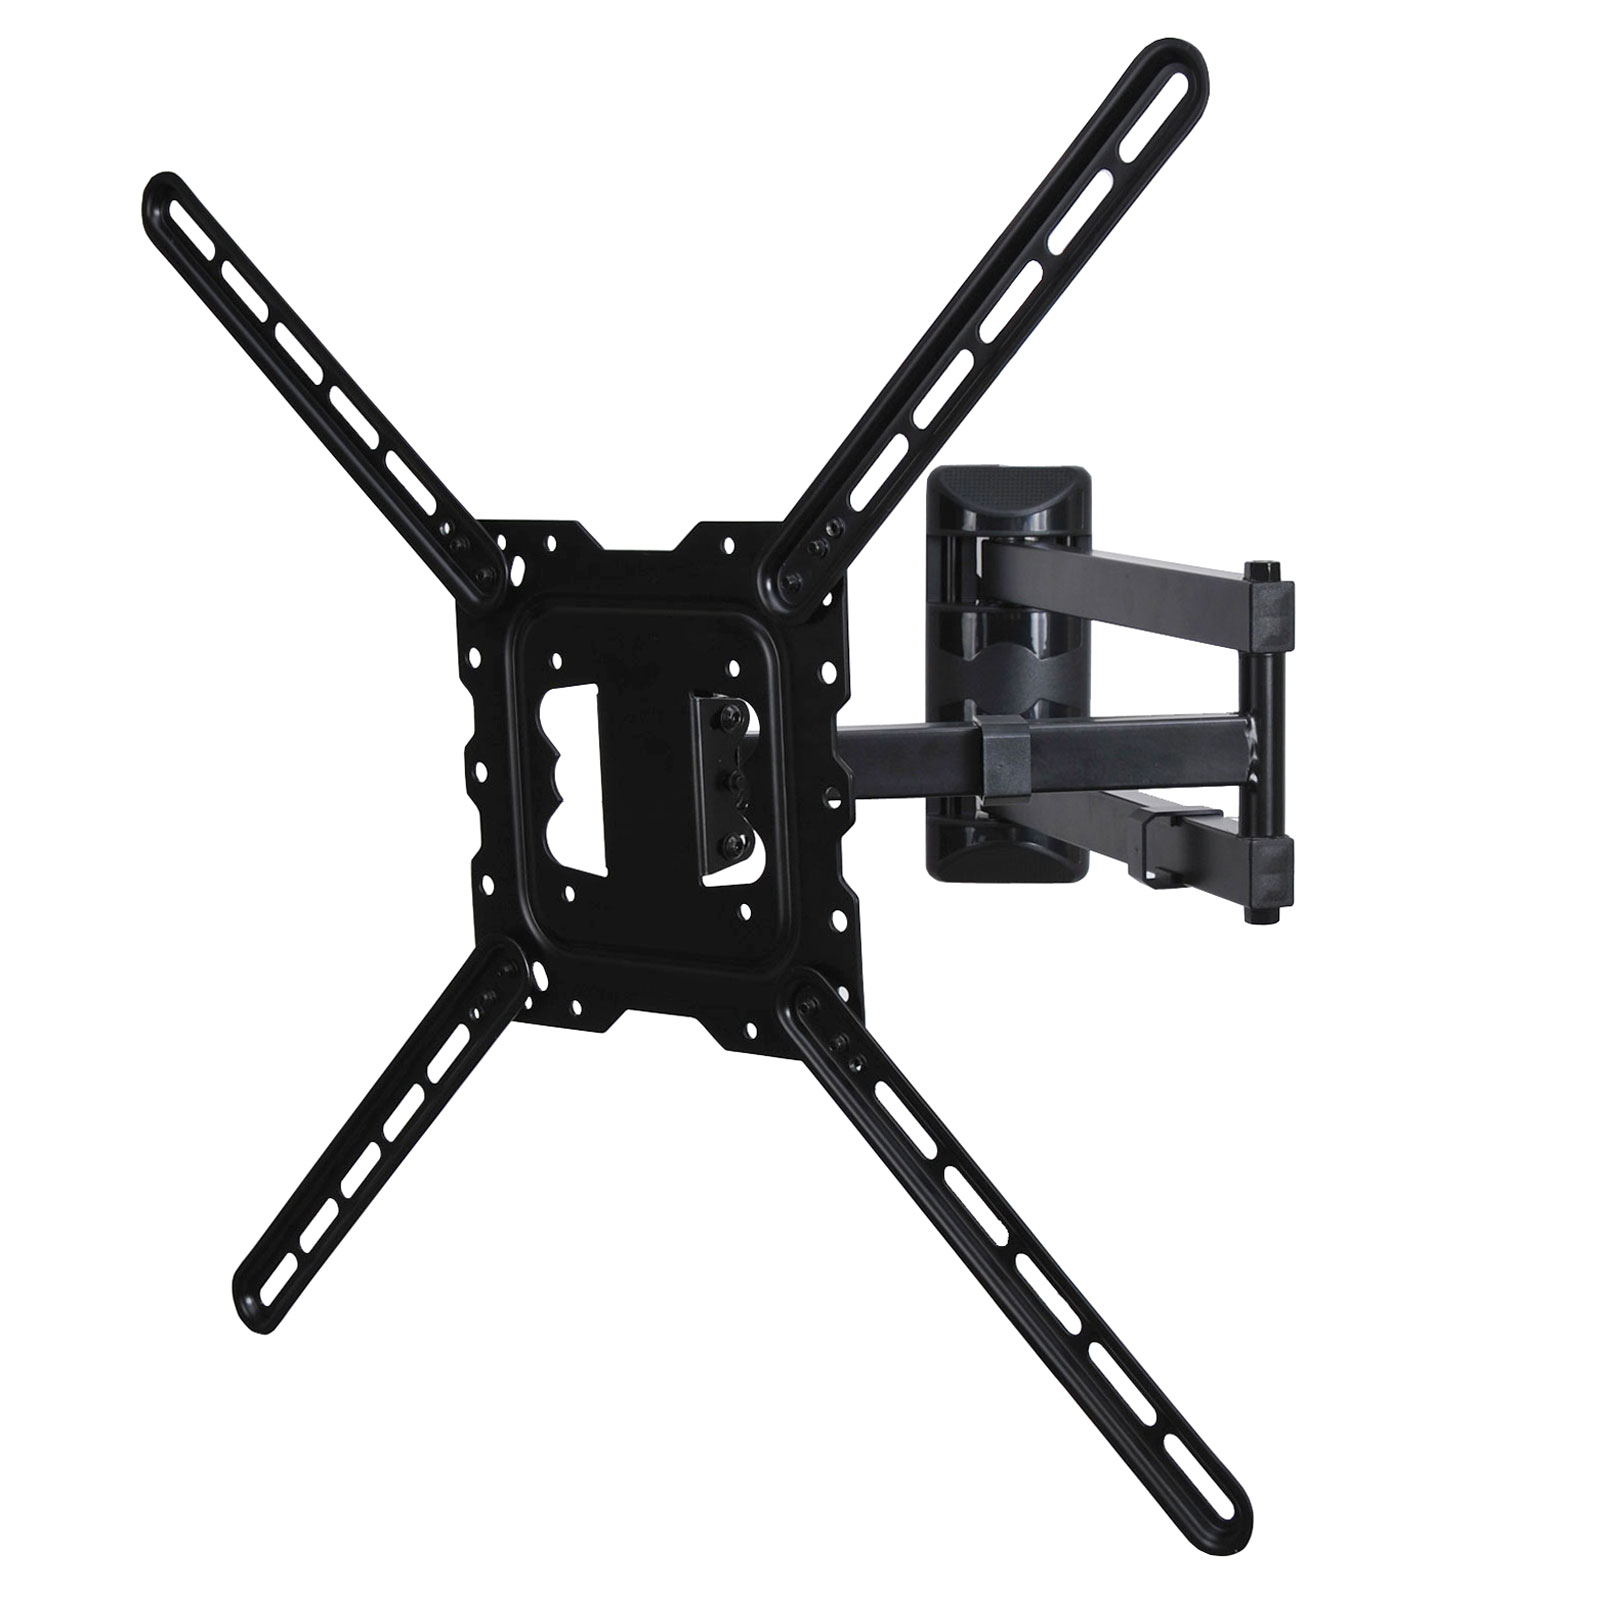 hight resolution of videosecu full motion tv wall mount for 26 50 phillips jvc rca dynex changhong seiki insignia lcd led refurbished bni walmart com